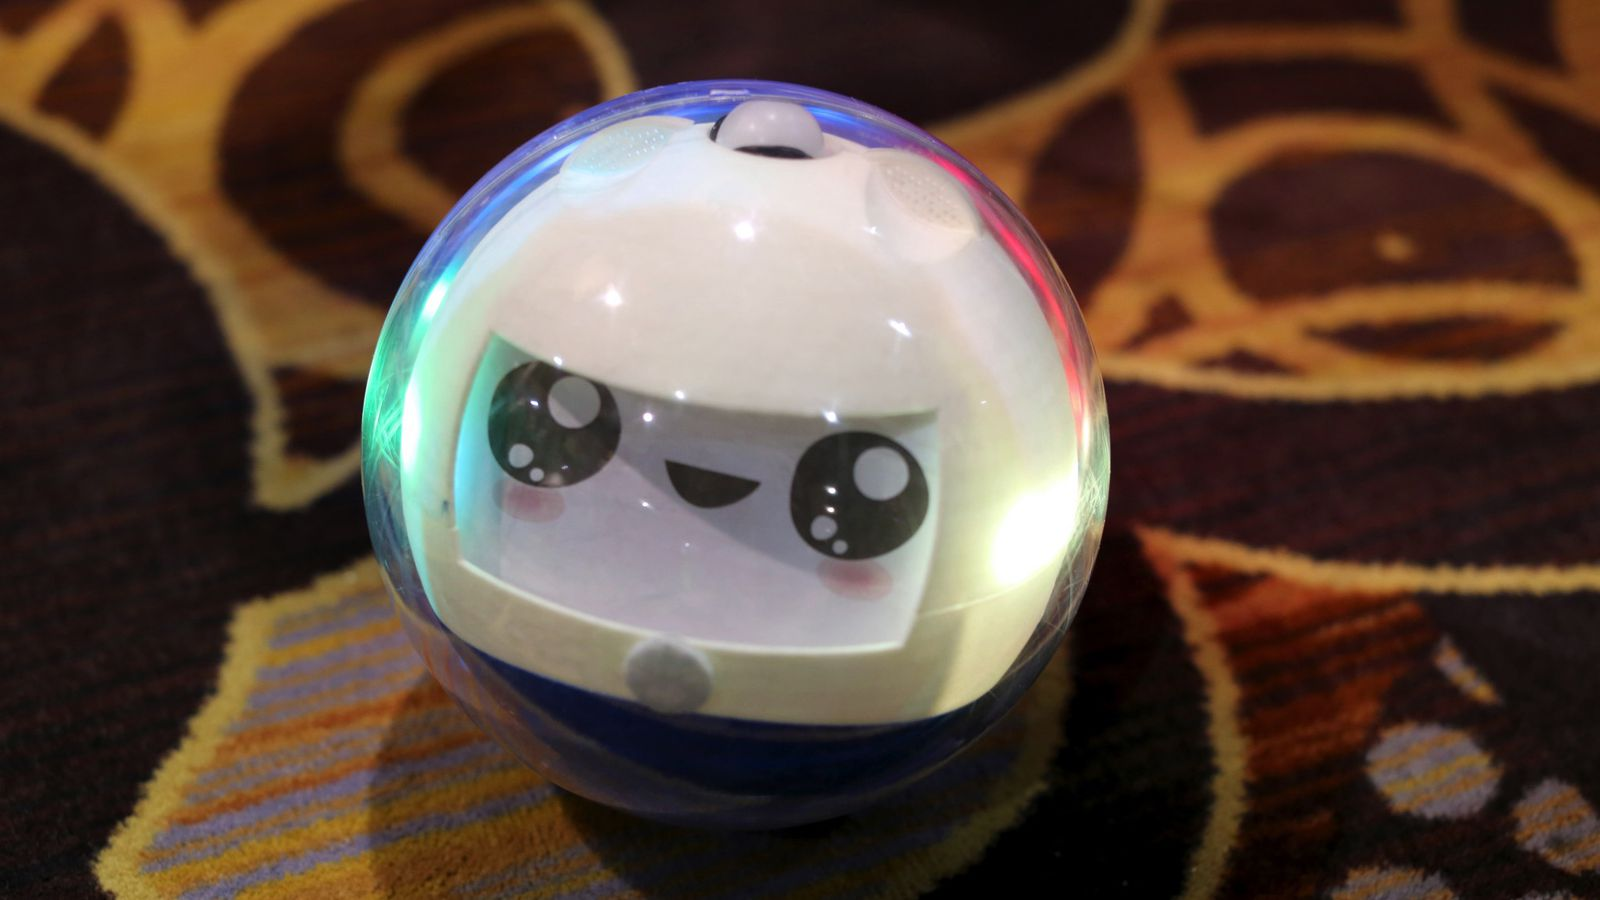 Best Smart Toys For Kids Reviewed : The leka smart toy is a robot for children with